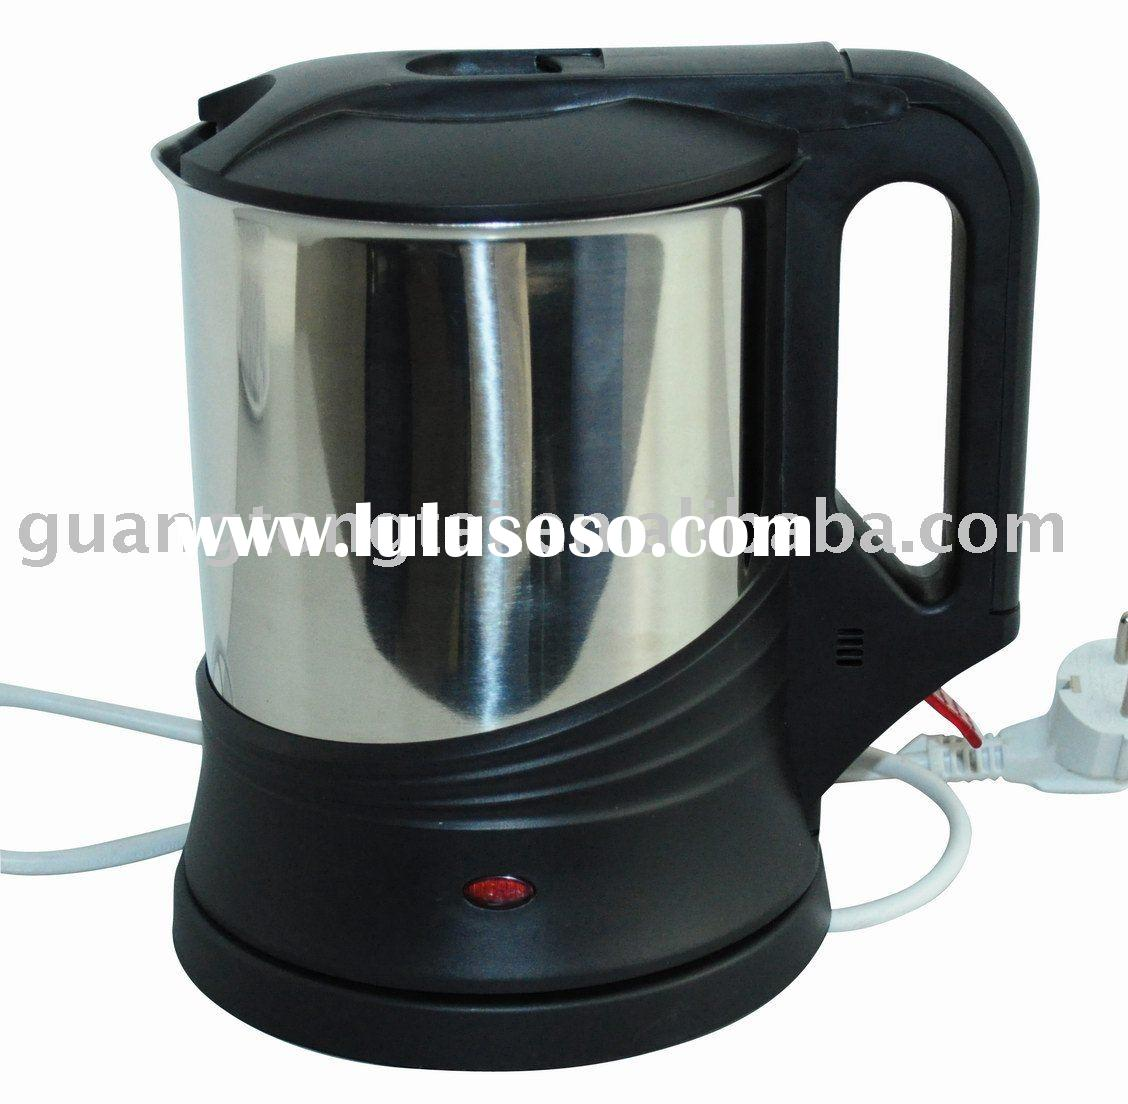 Stainless steel cordless electric water kettle